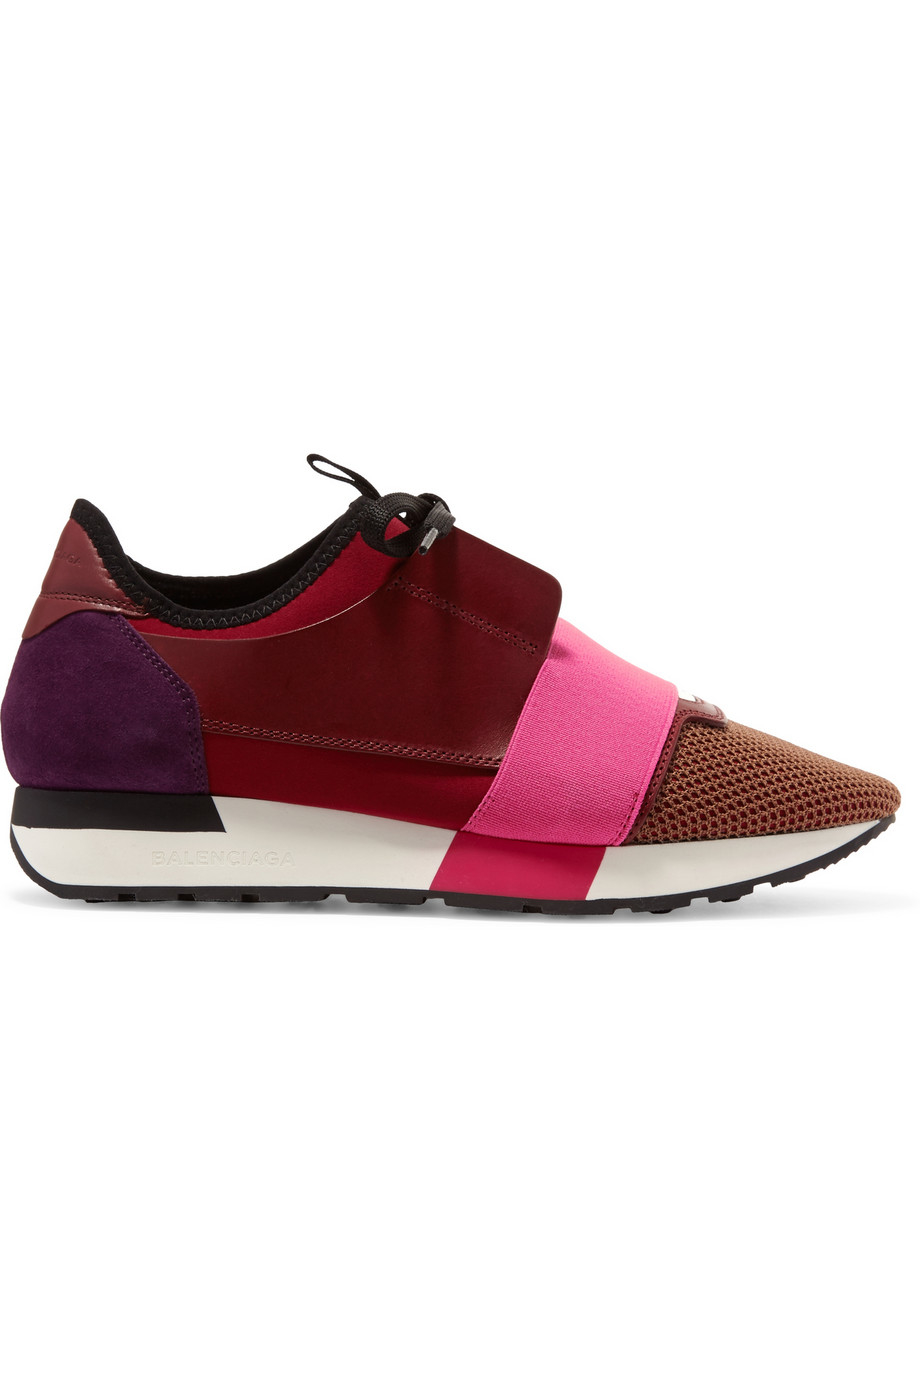 Balenciaga Race Runner Leather in Red